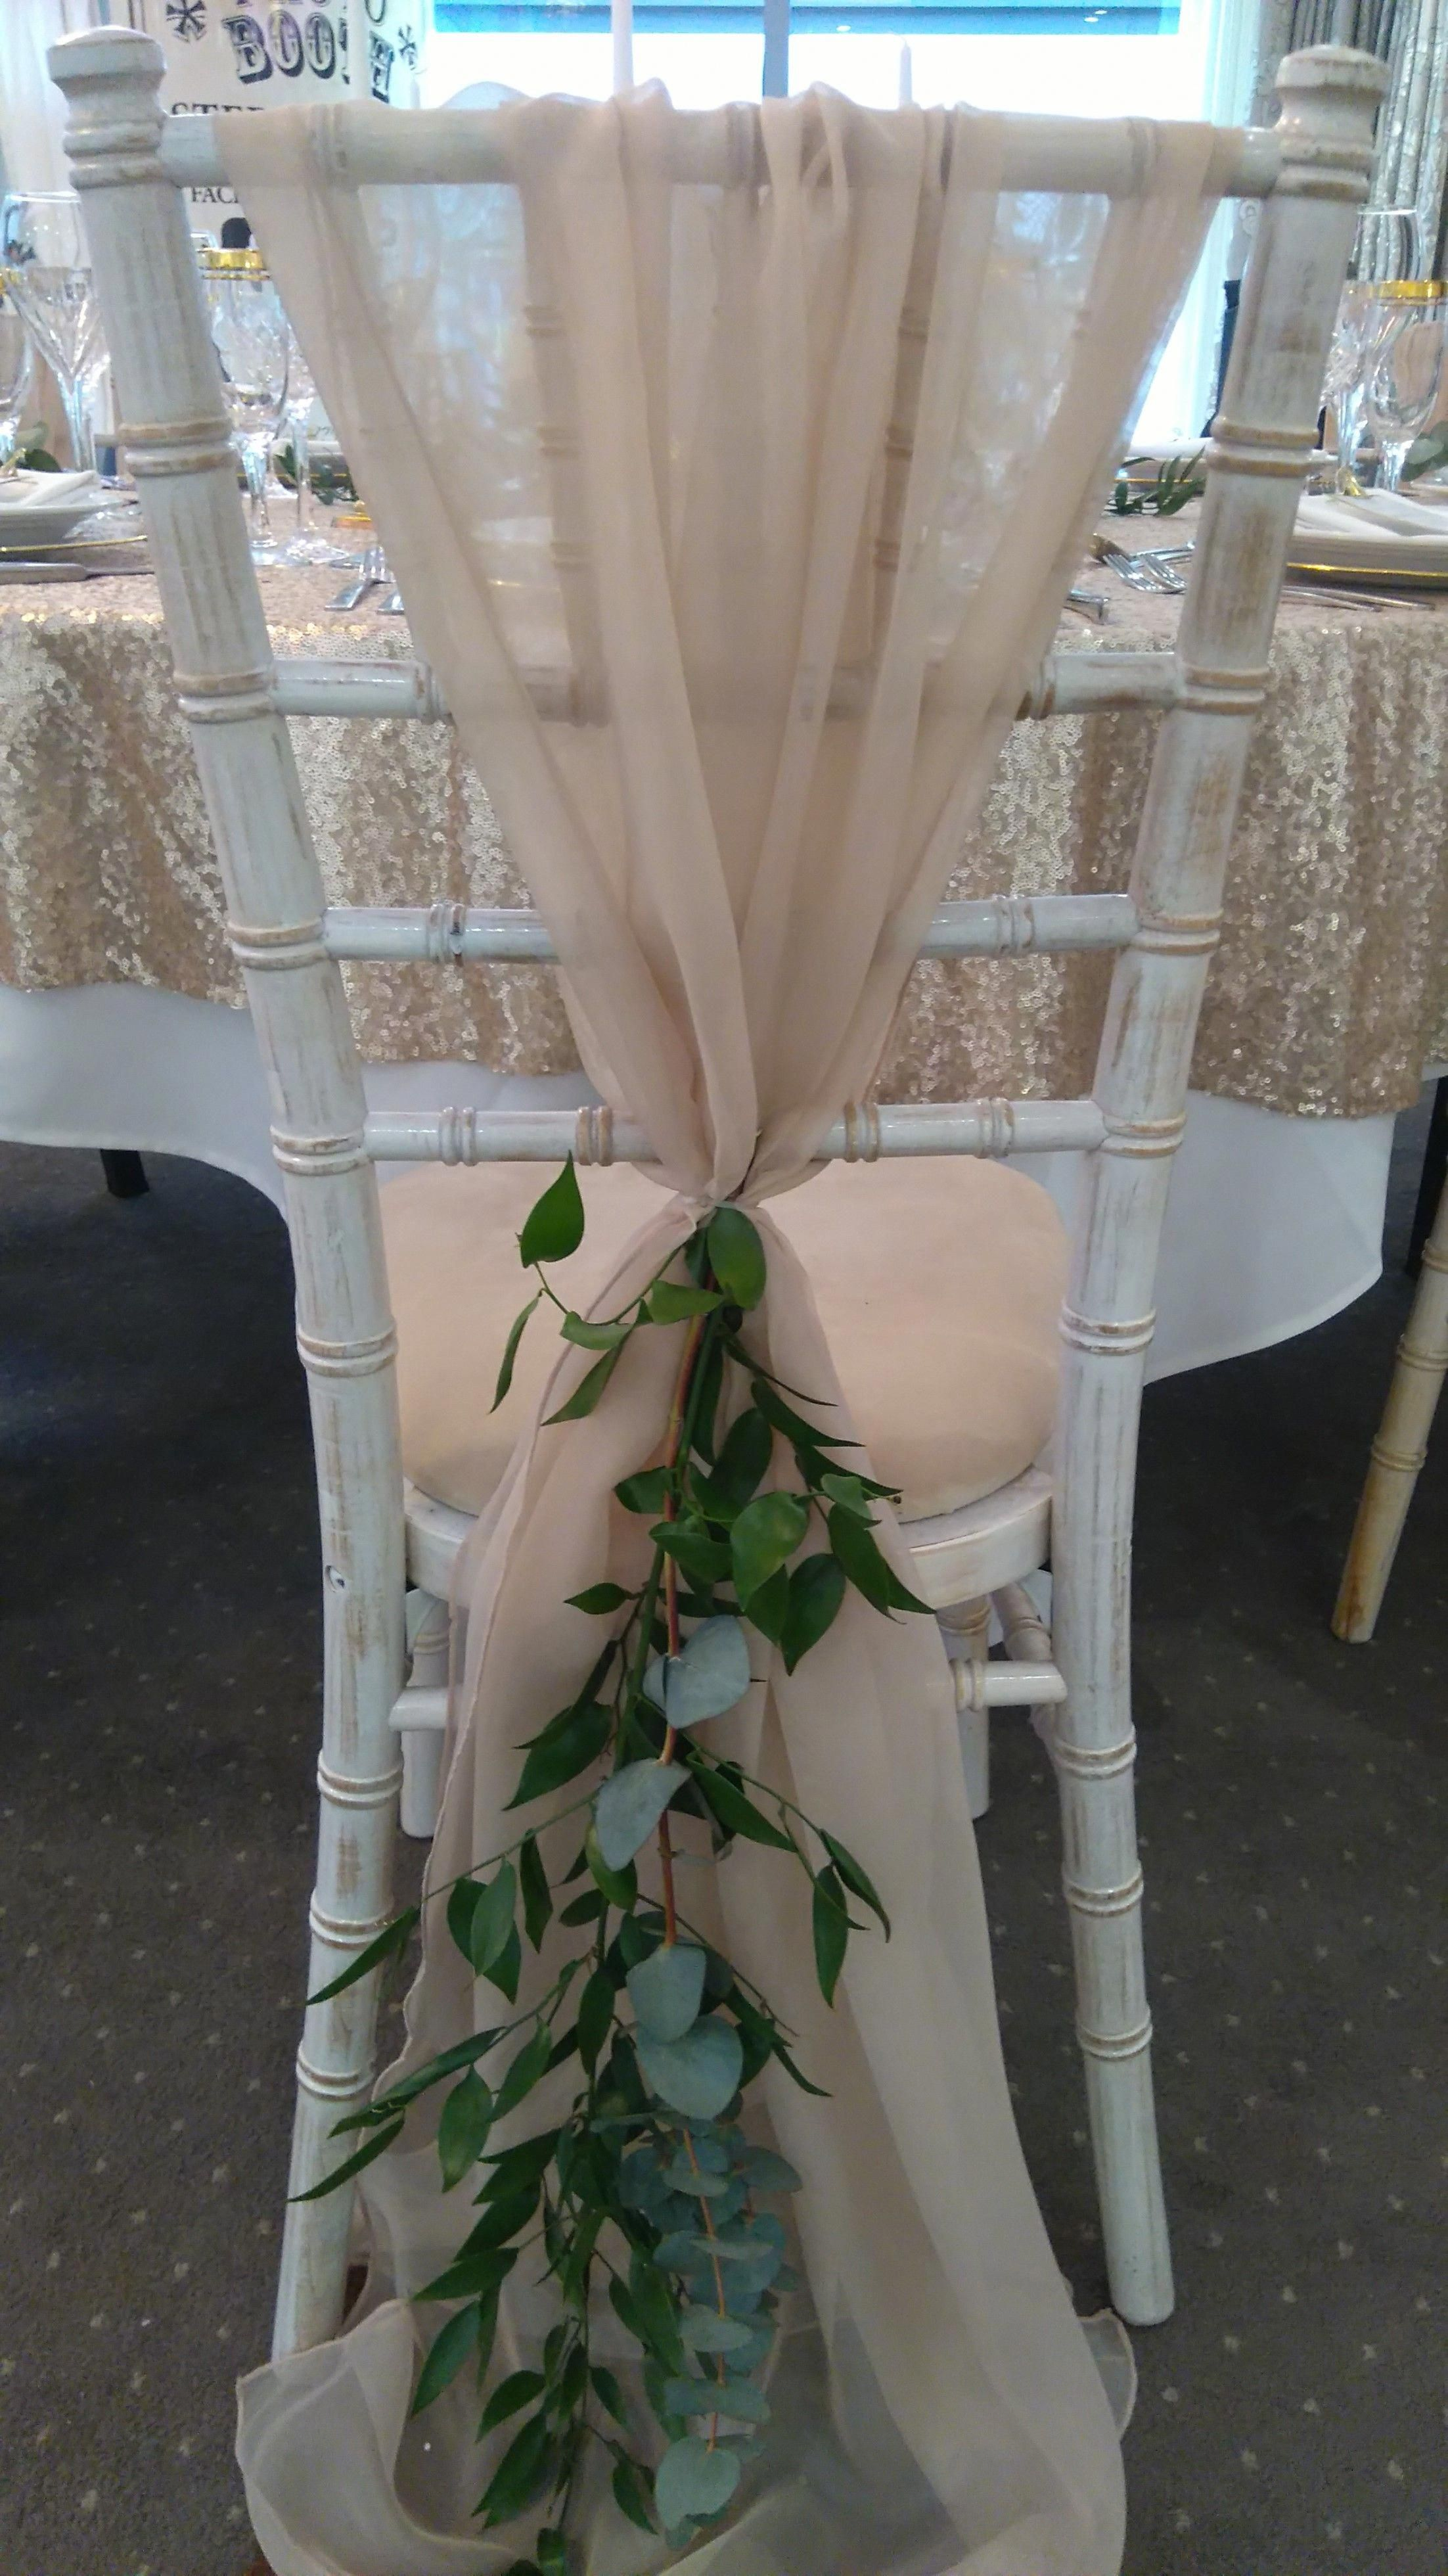 Pin by Vanessa on Wedding (With images) | Chair covers ...